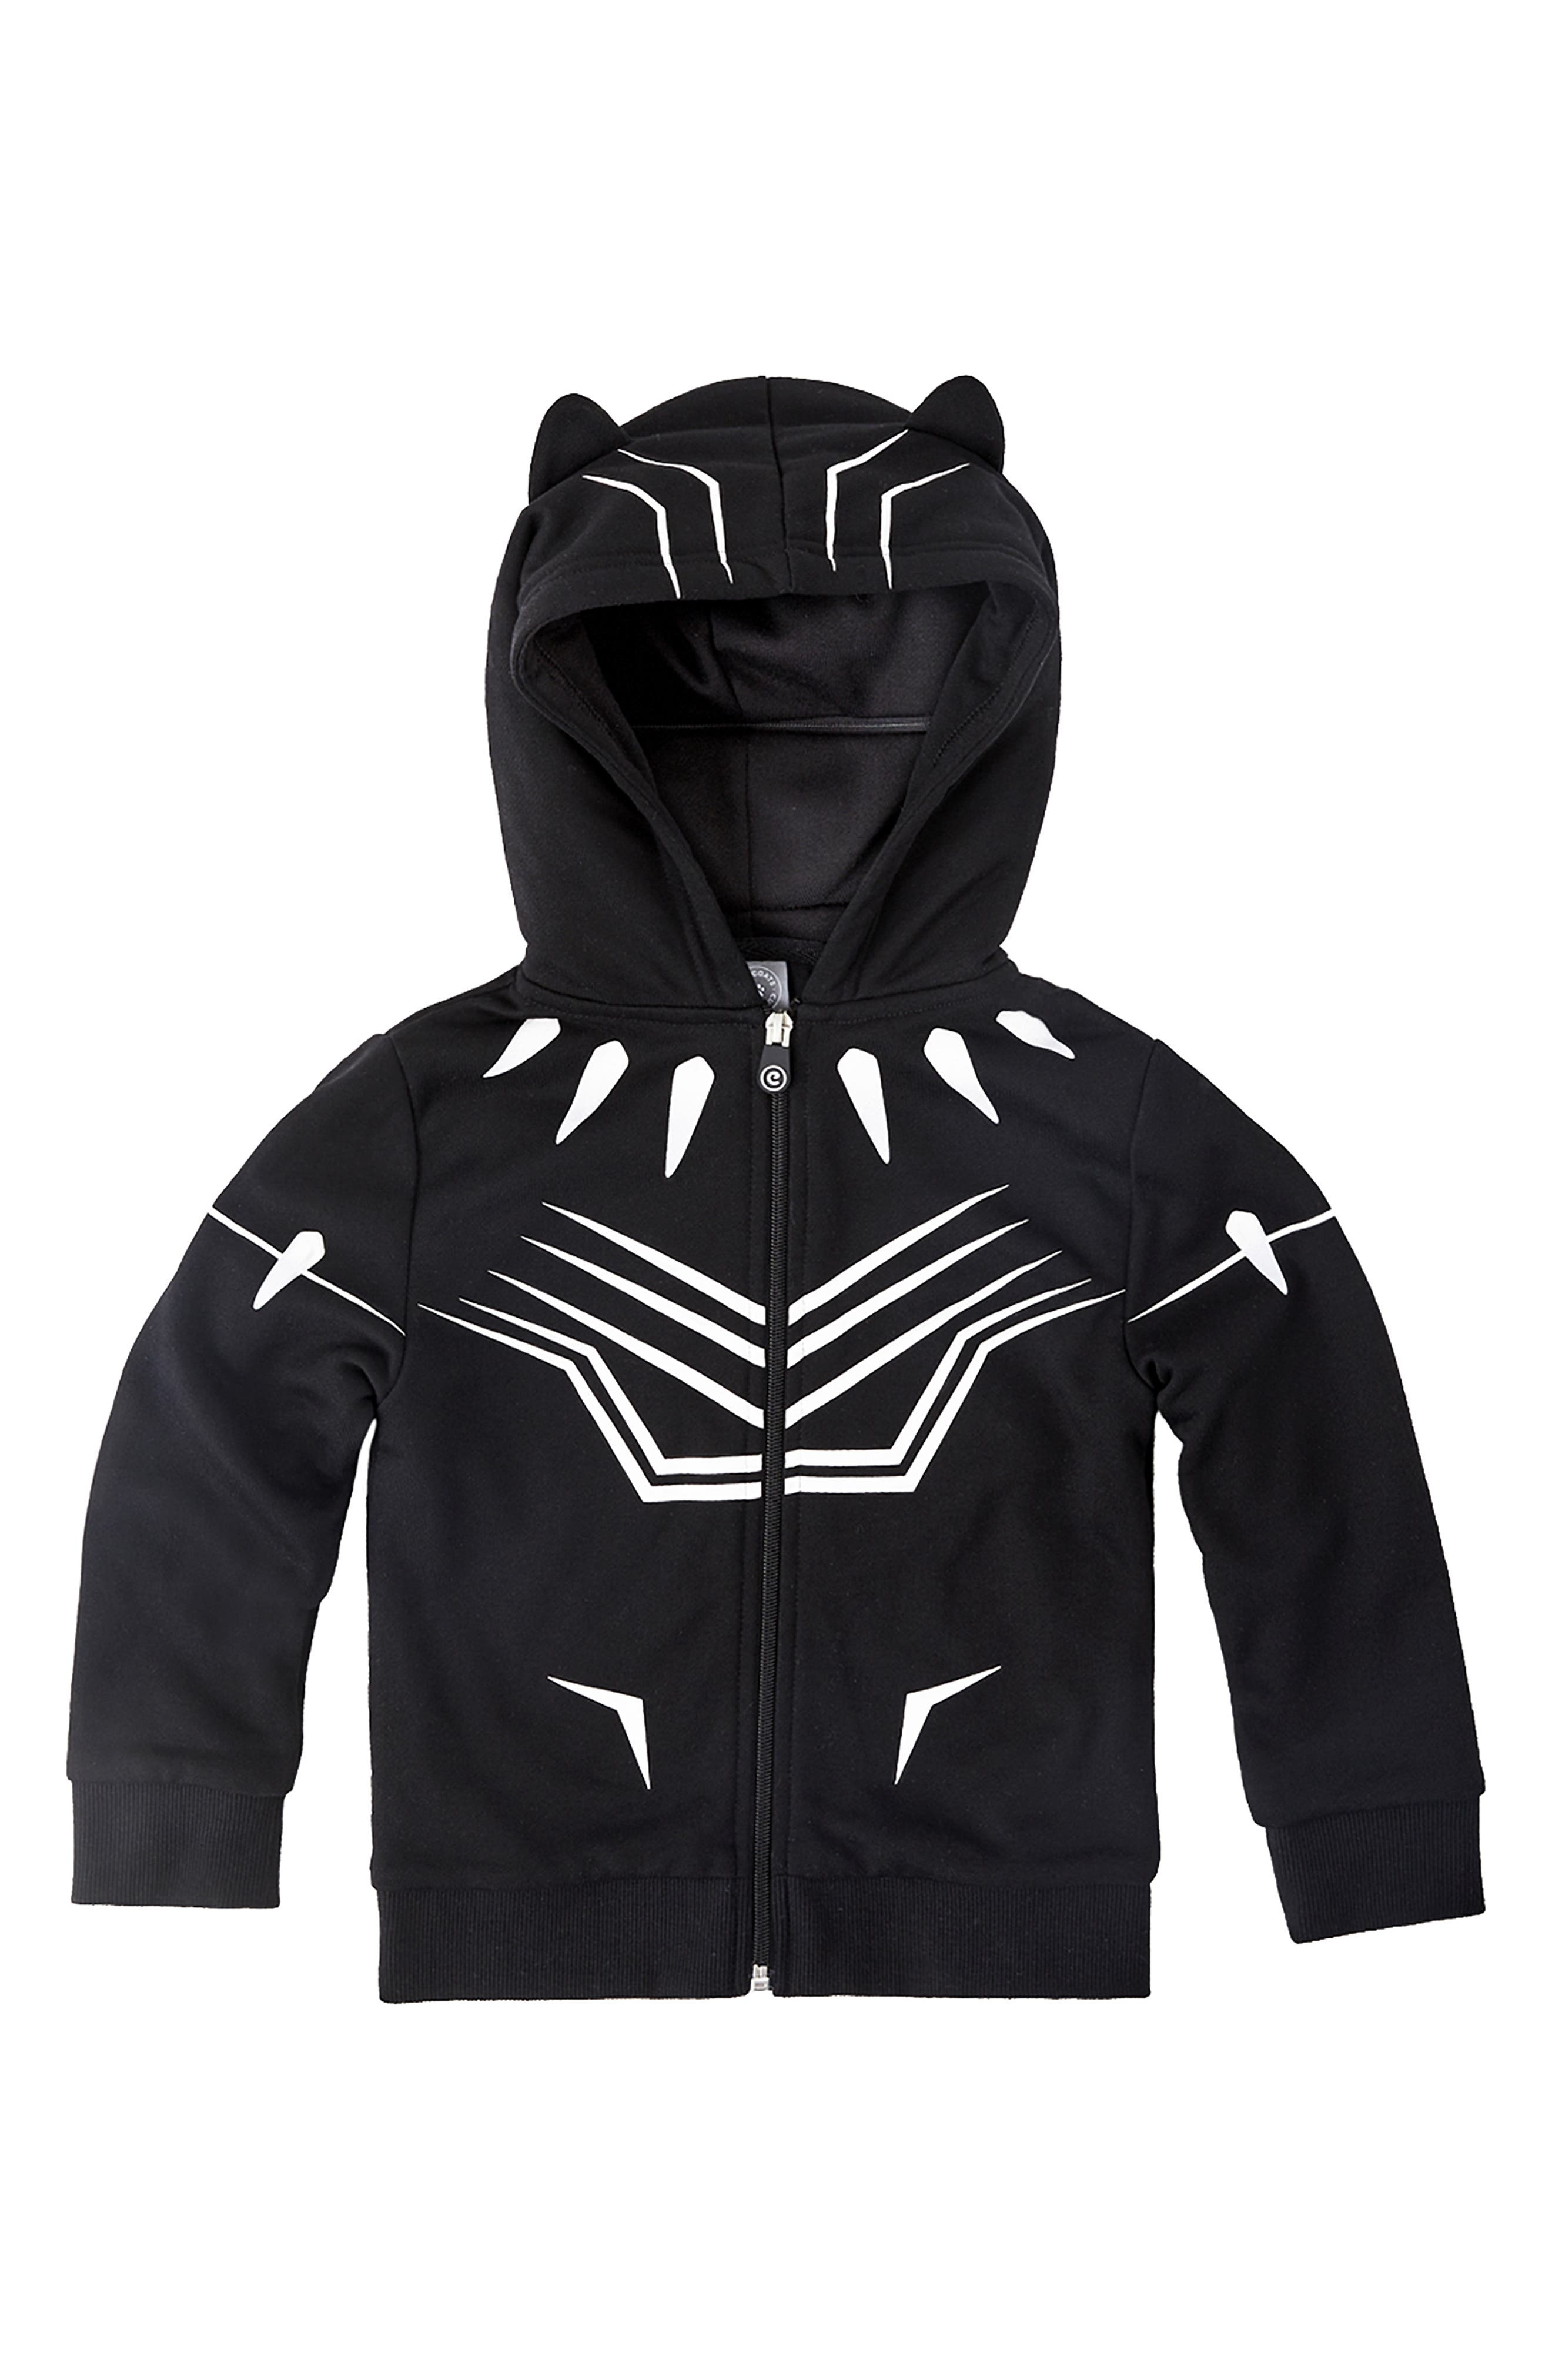 Marvel<sup>®</sup> 2018 Black Panther<sup>®</sup> 2-in-1 Stuffed Animal Hoodie,                             Alternate thumbnail 5, color,                             BLACK